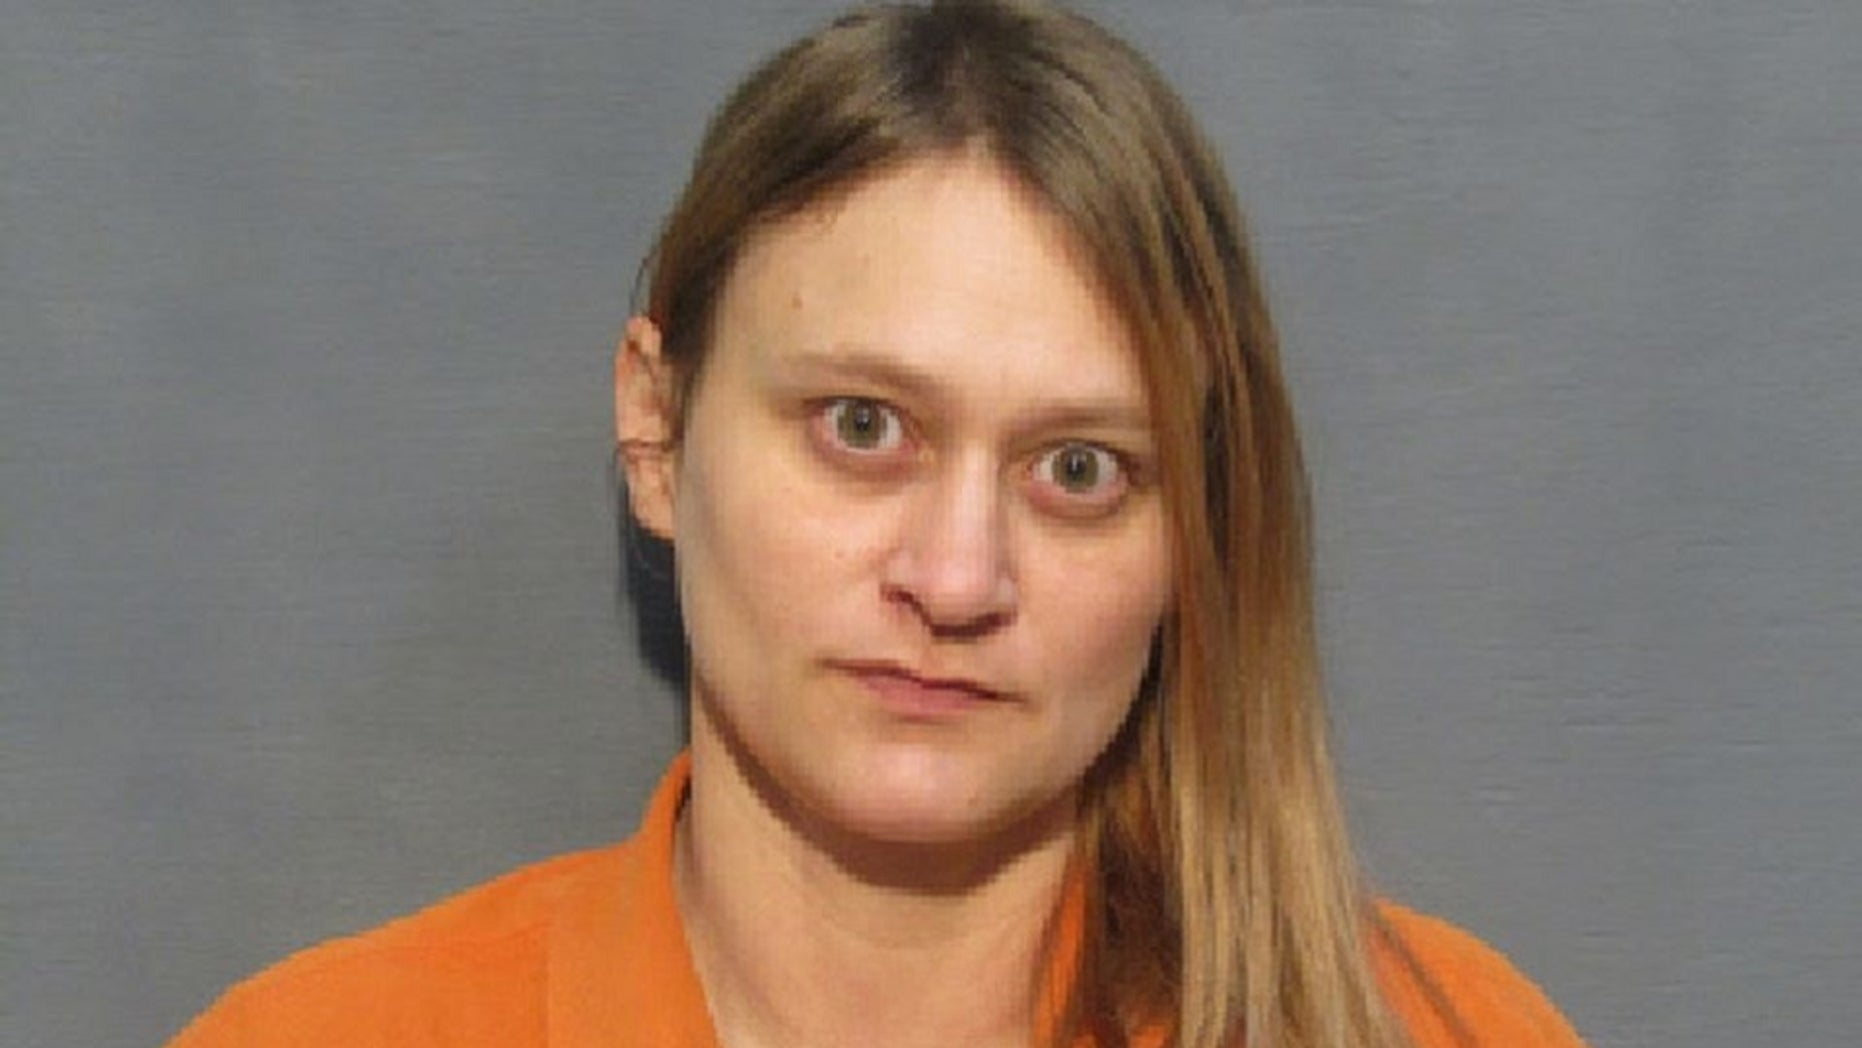 Amanda Gail Oakes, 36, is charged with manslaughter and abuse of a corpse, authorities say.